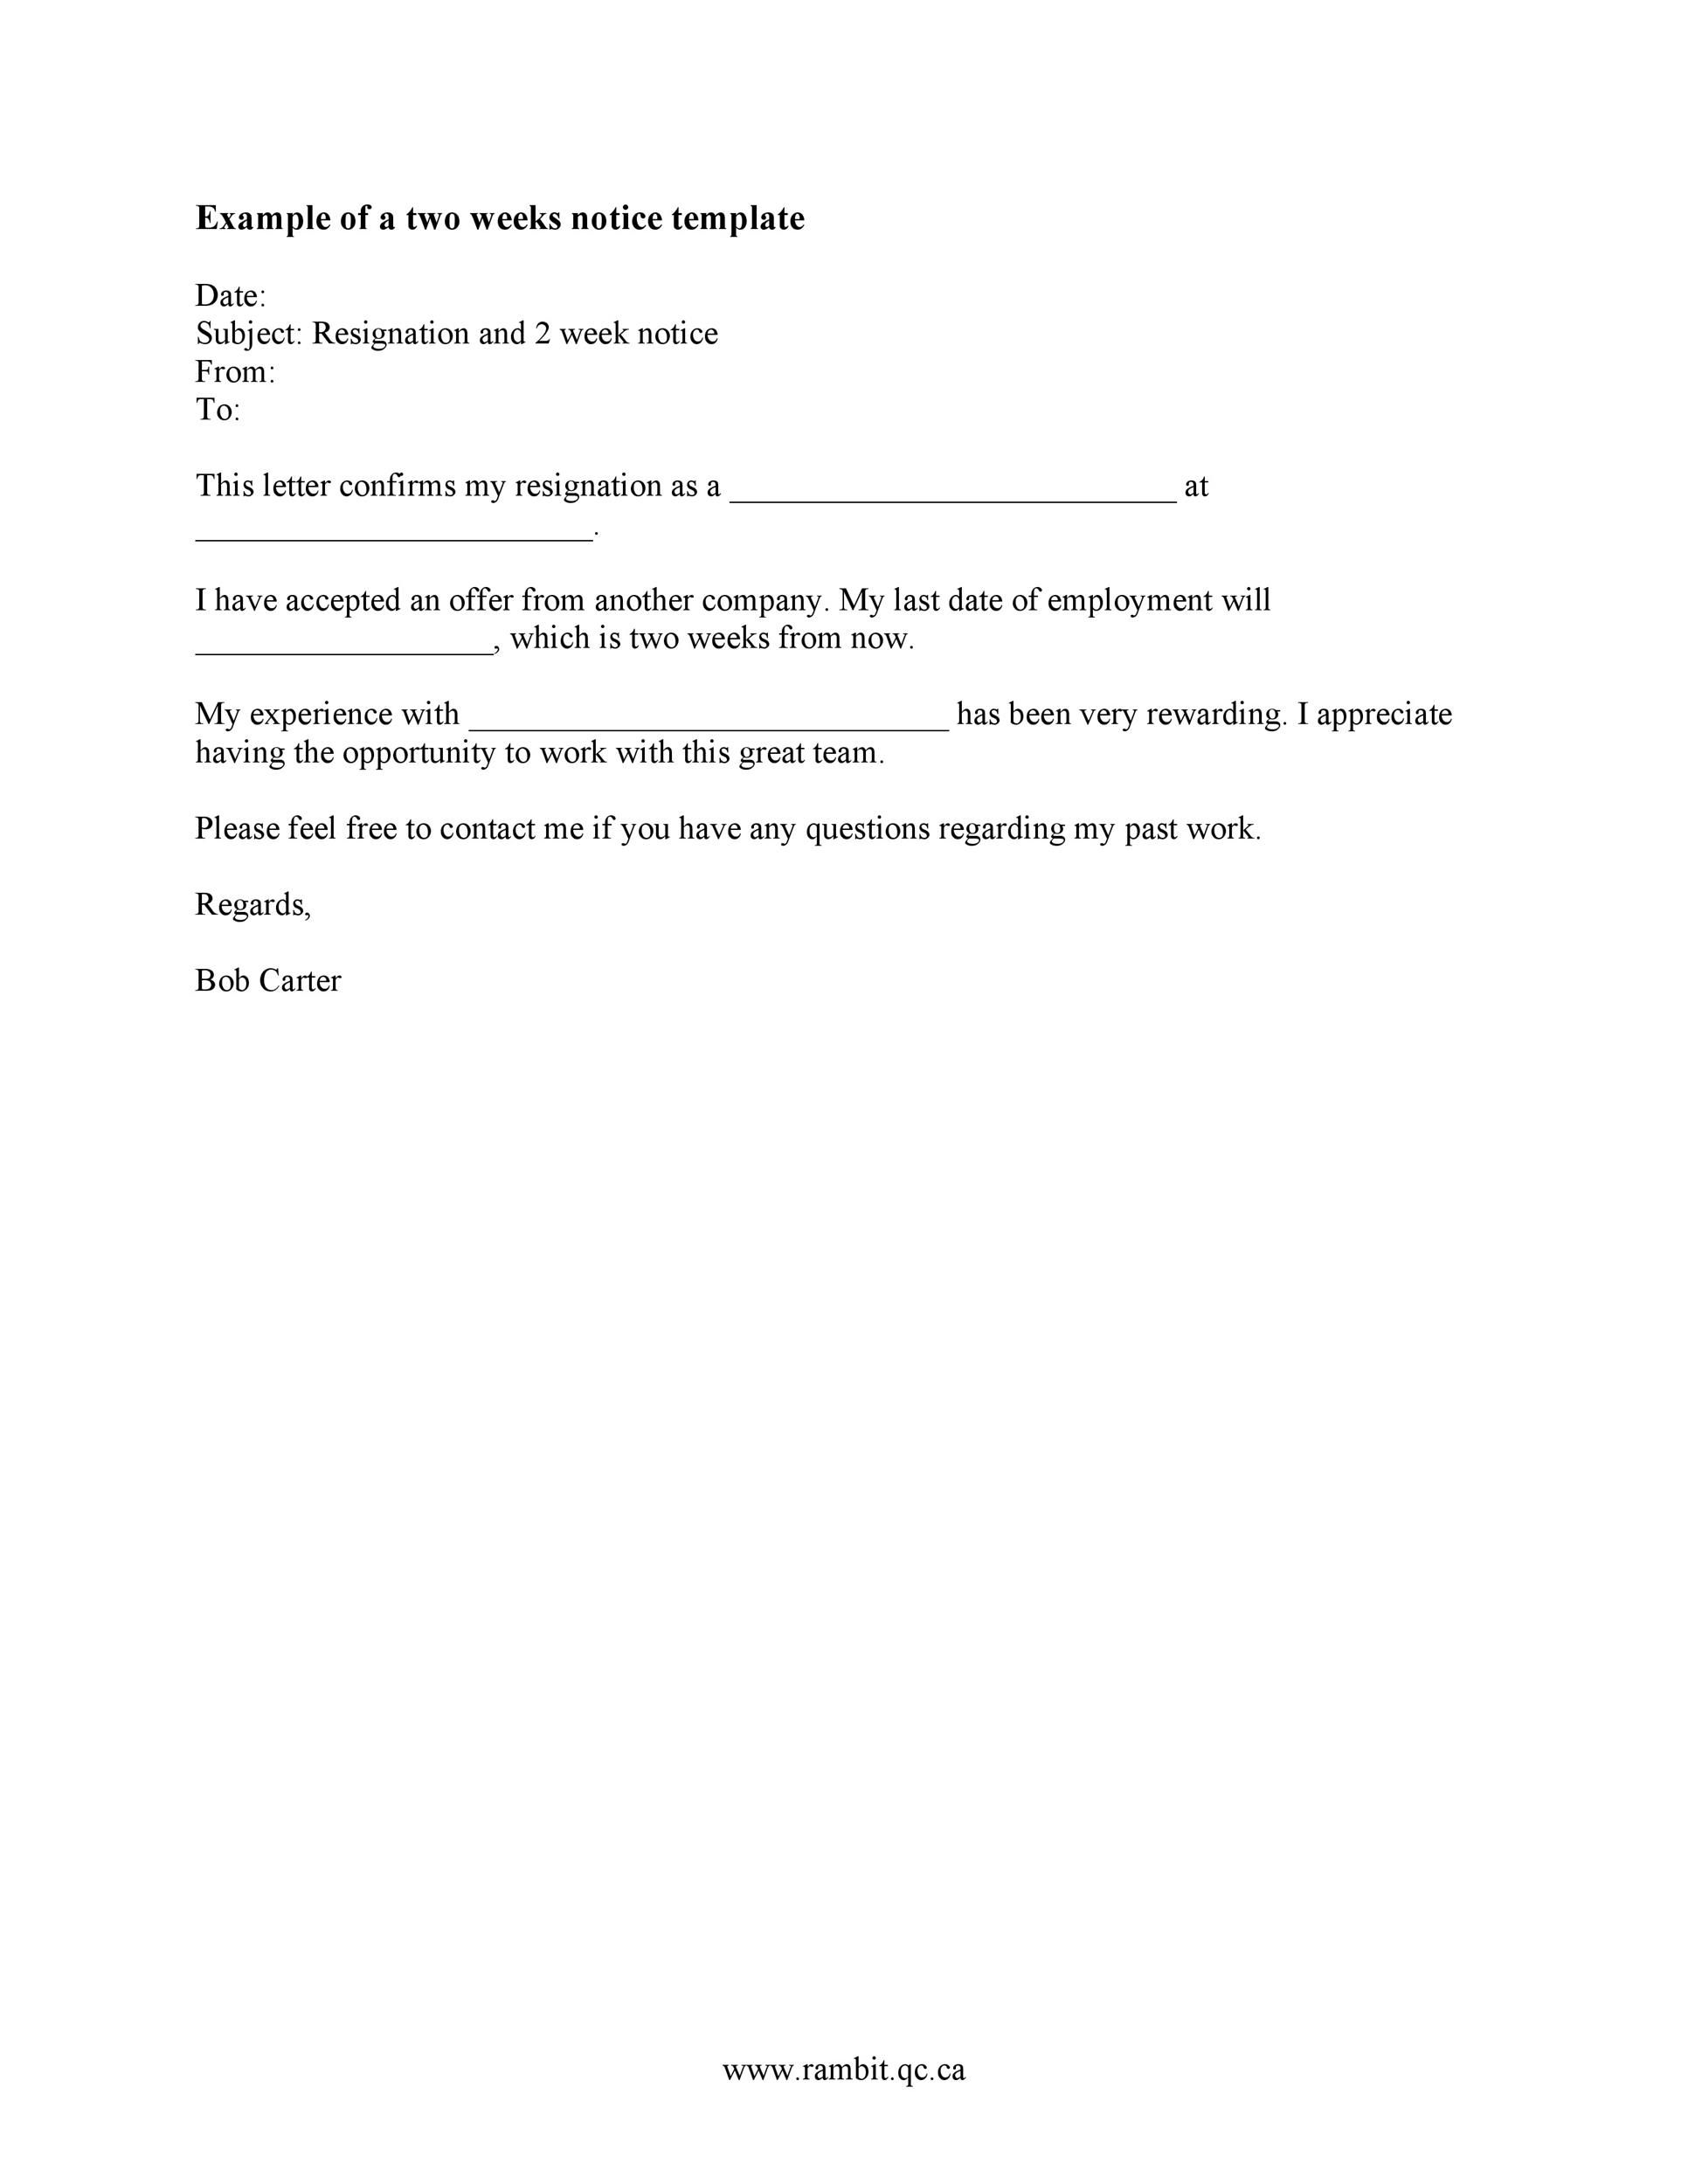 005 Rare Two Week Notice Letter Template Highest Quality  Free Professional 2Full